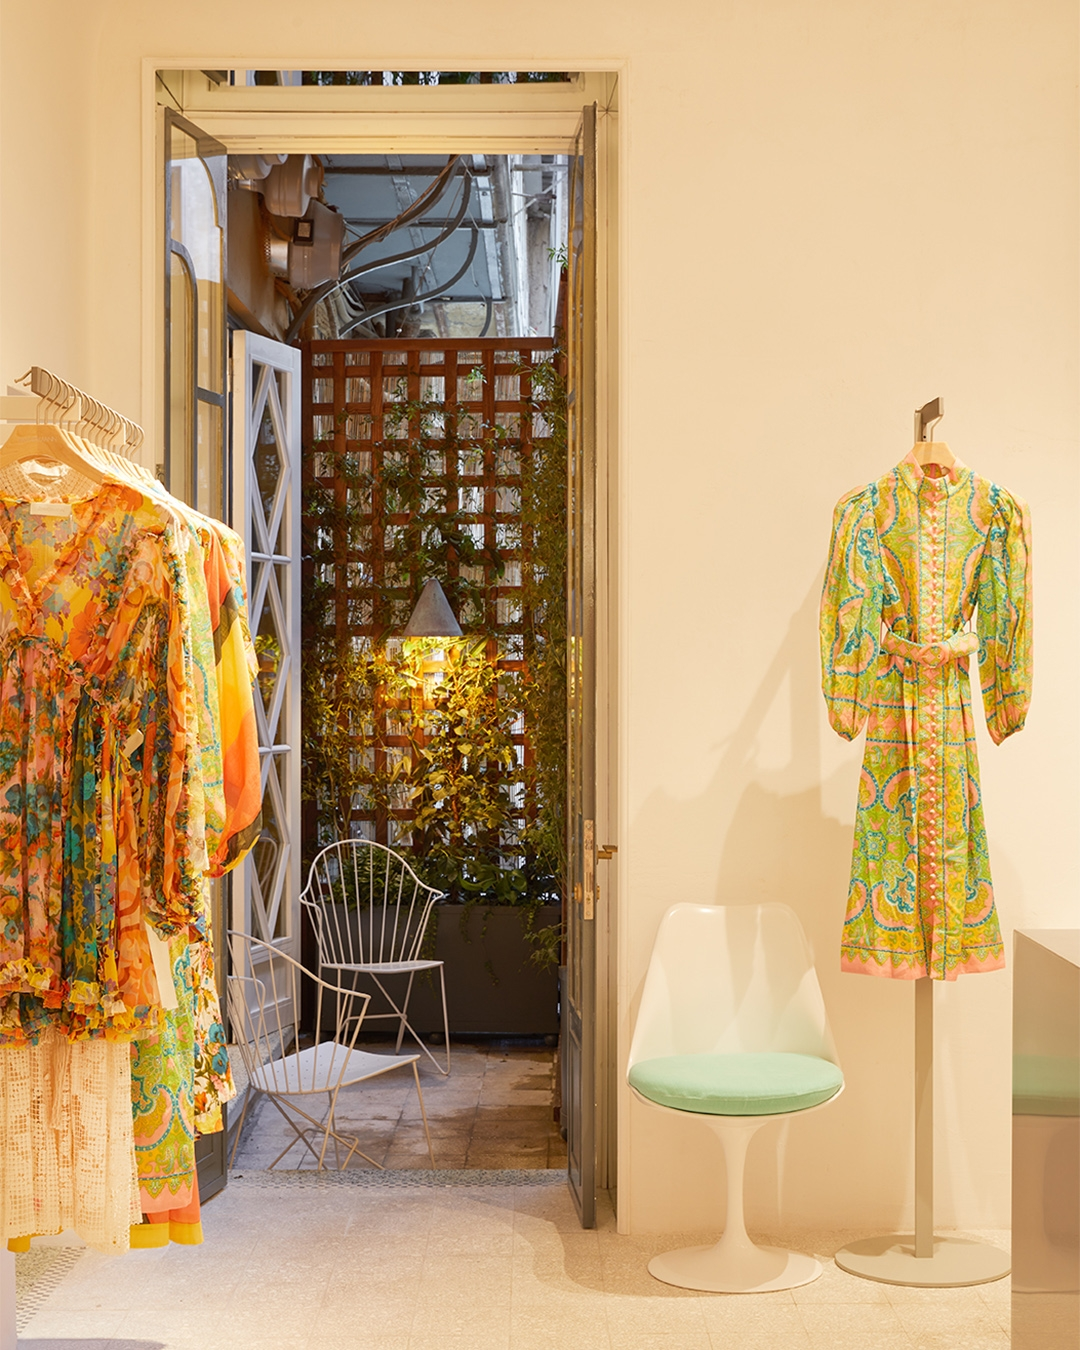 New season collection in store at Zimmermann Rome